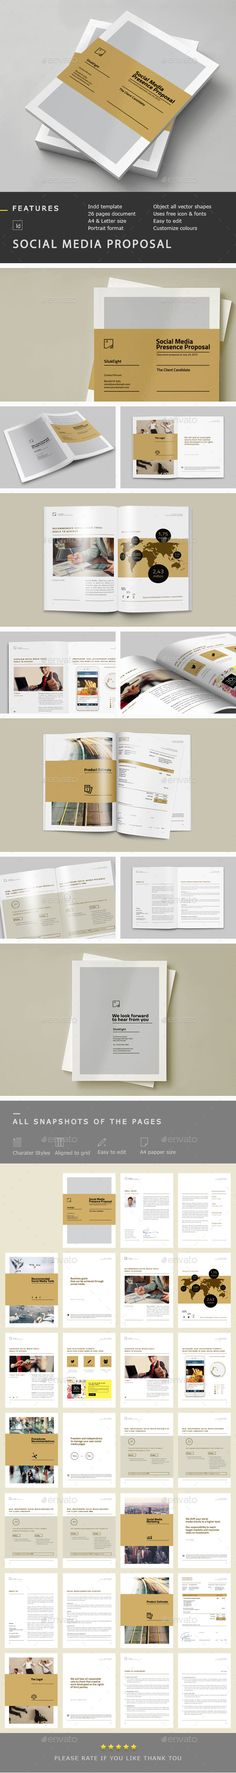 Social Media Proposal Template #proposal #invoices Download:  http://graphicriver.net/item/social-media-proposal/10447913?ref=ksioks